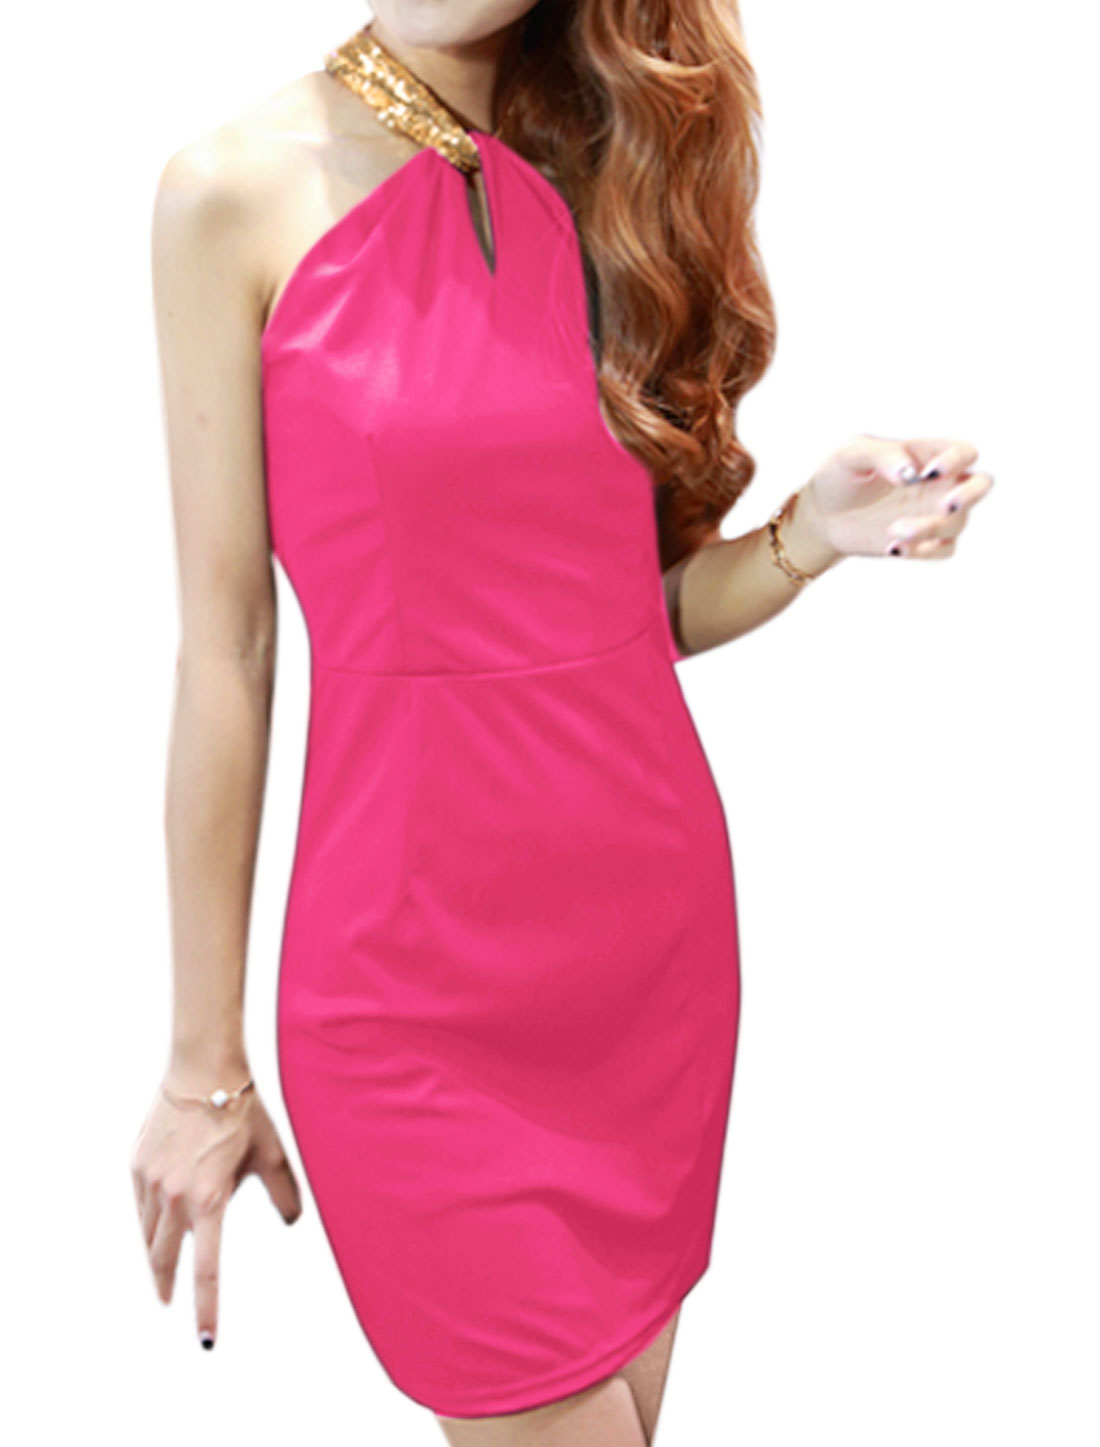 Woman Sequined Halter Neck Cut Out Back Sheath Dress Pink M